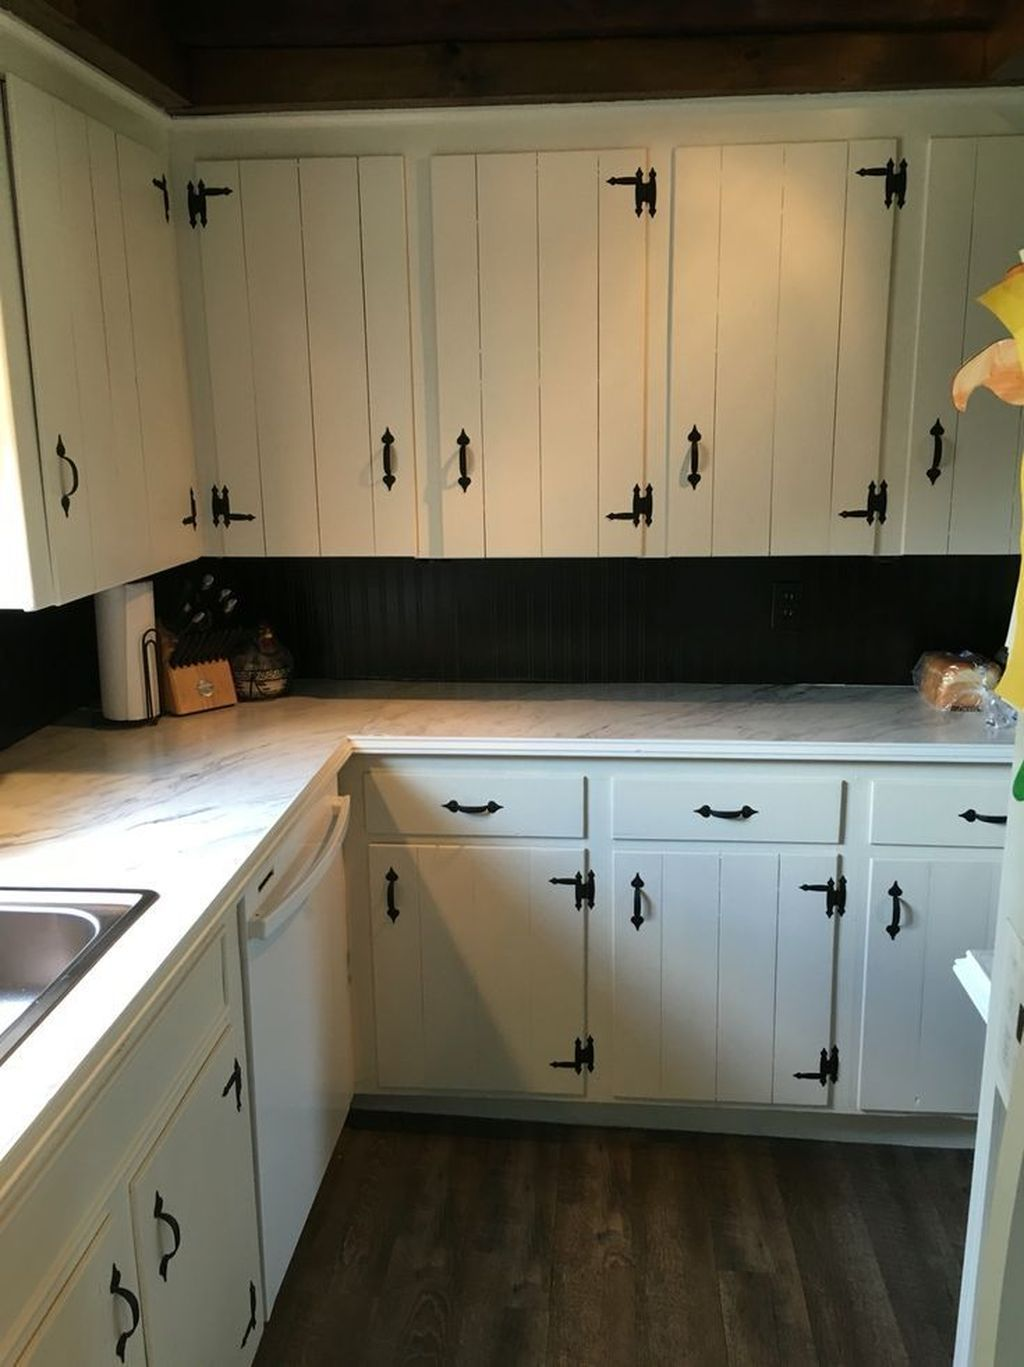 32 Popular Kitchen Cabinets Makeover Ideas On A Budget Budget Cabinets Ideas Kitchen Make In 2020 Kitchen Cabinets Makeover Kitchen Renovation New Kitchen Cabinets